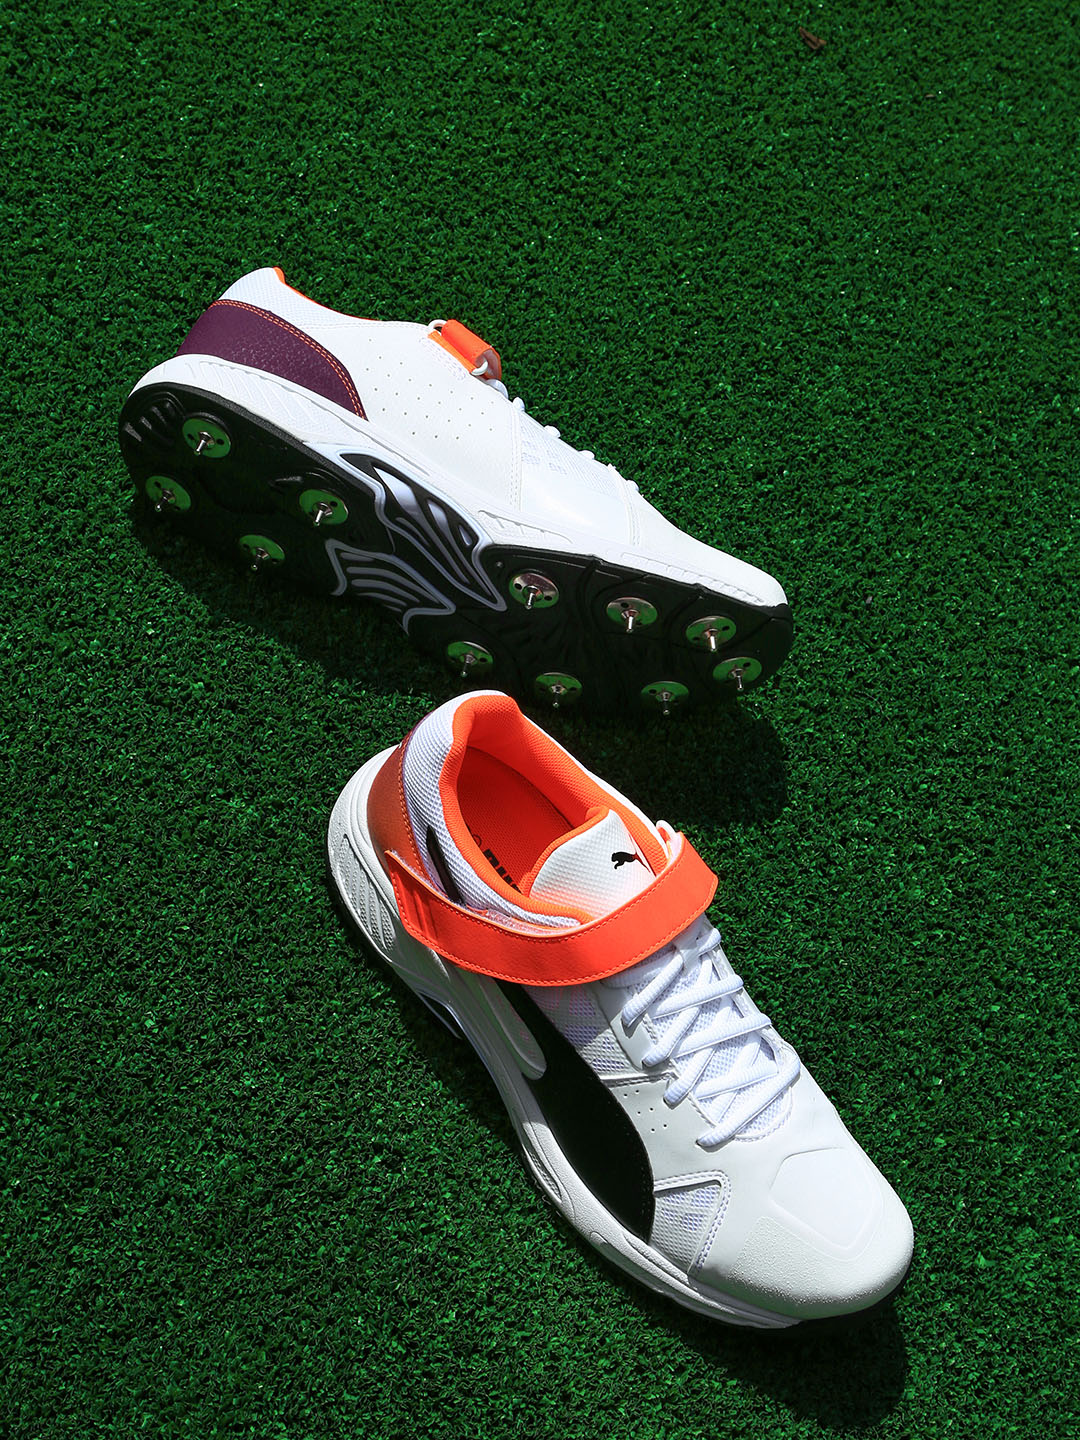 Cricket Spikes S Sports Shoes - Buy Cricket Spikes S Sports Shoes online in  India 6096b25f3